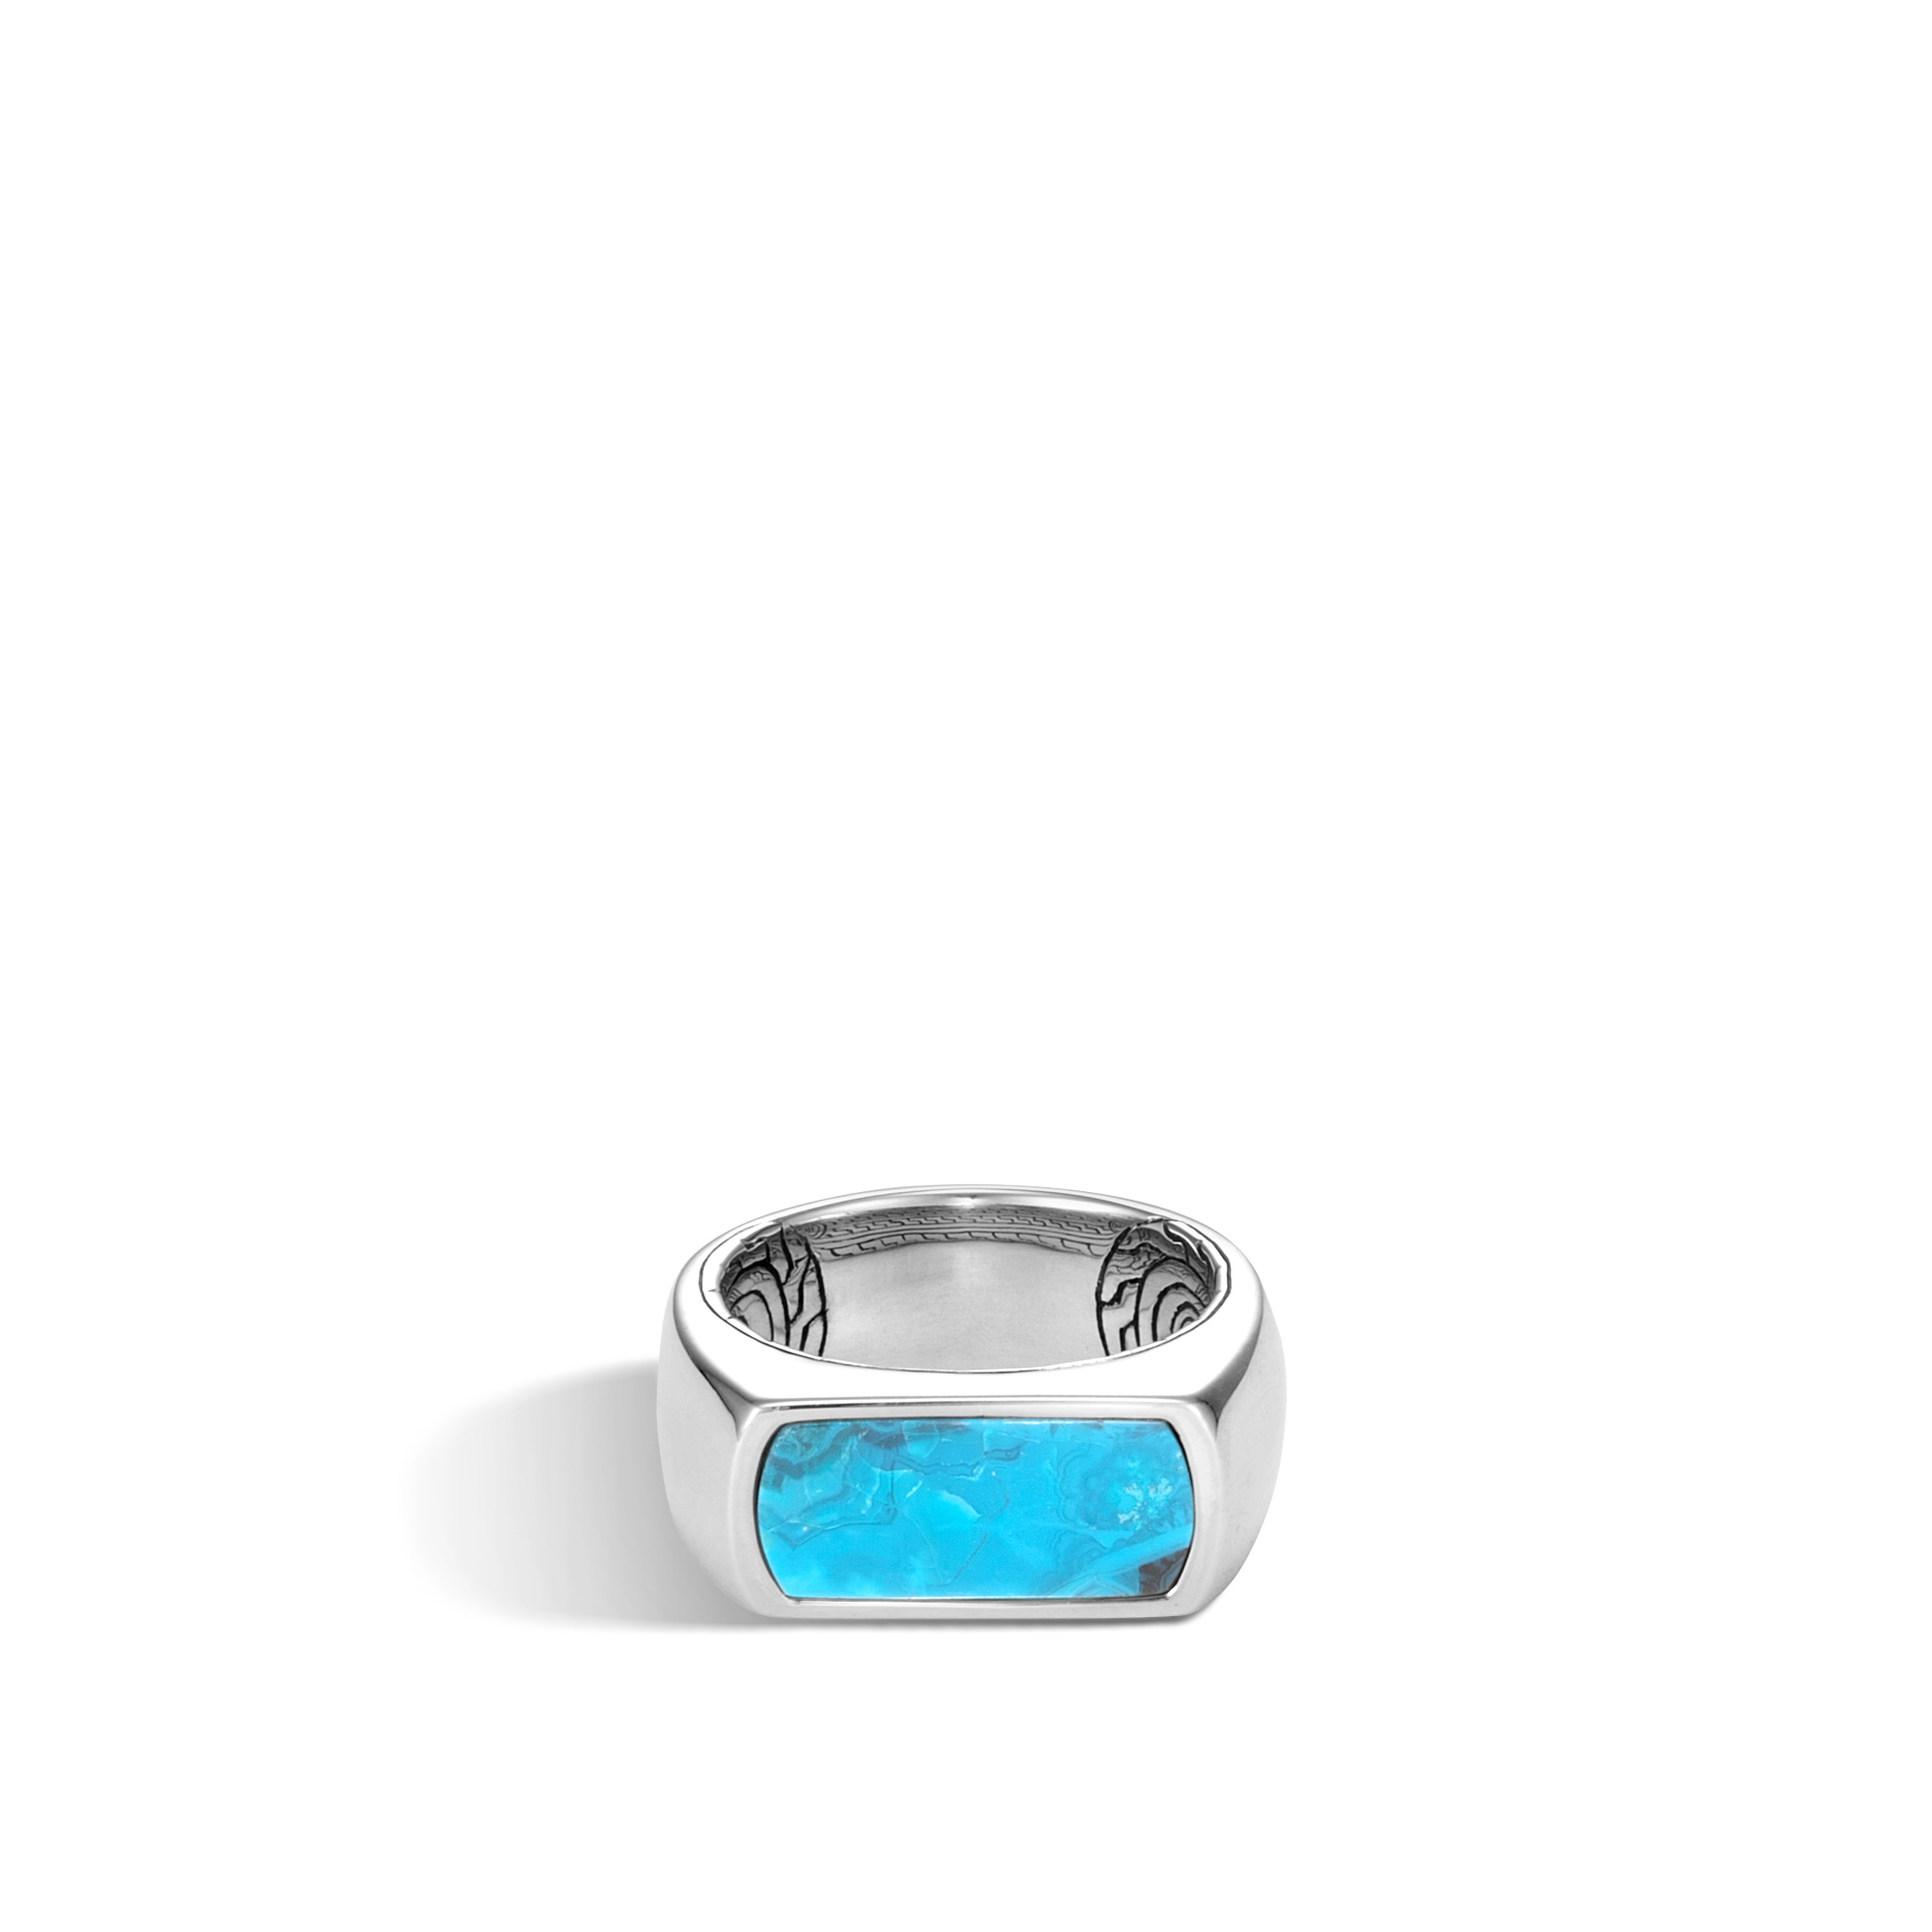 Classic Chain 9.5MM Band Ring in Silver with Gemstone, Chrysocolla, large